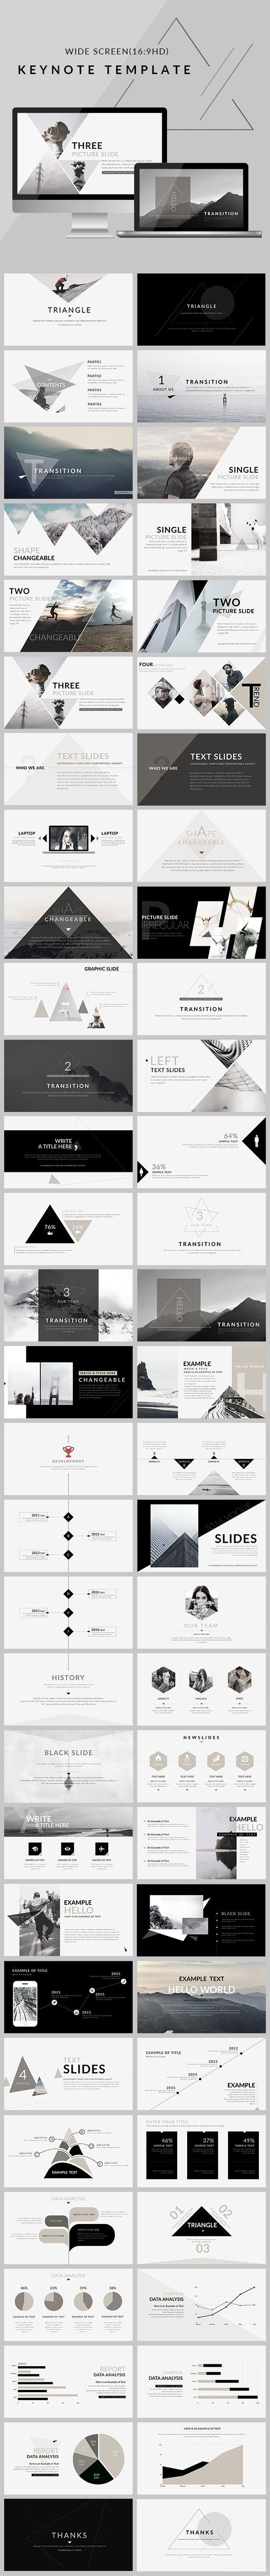 Triangle - Clean trend Keynote Template. Download here… | Poster ...